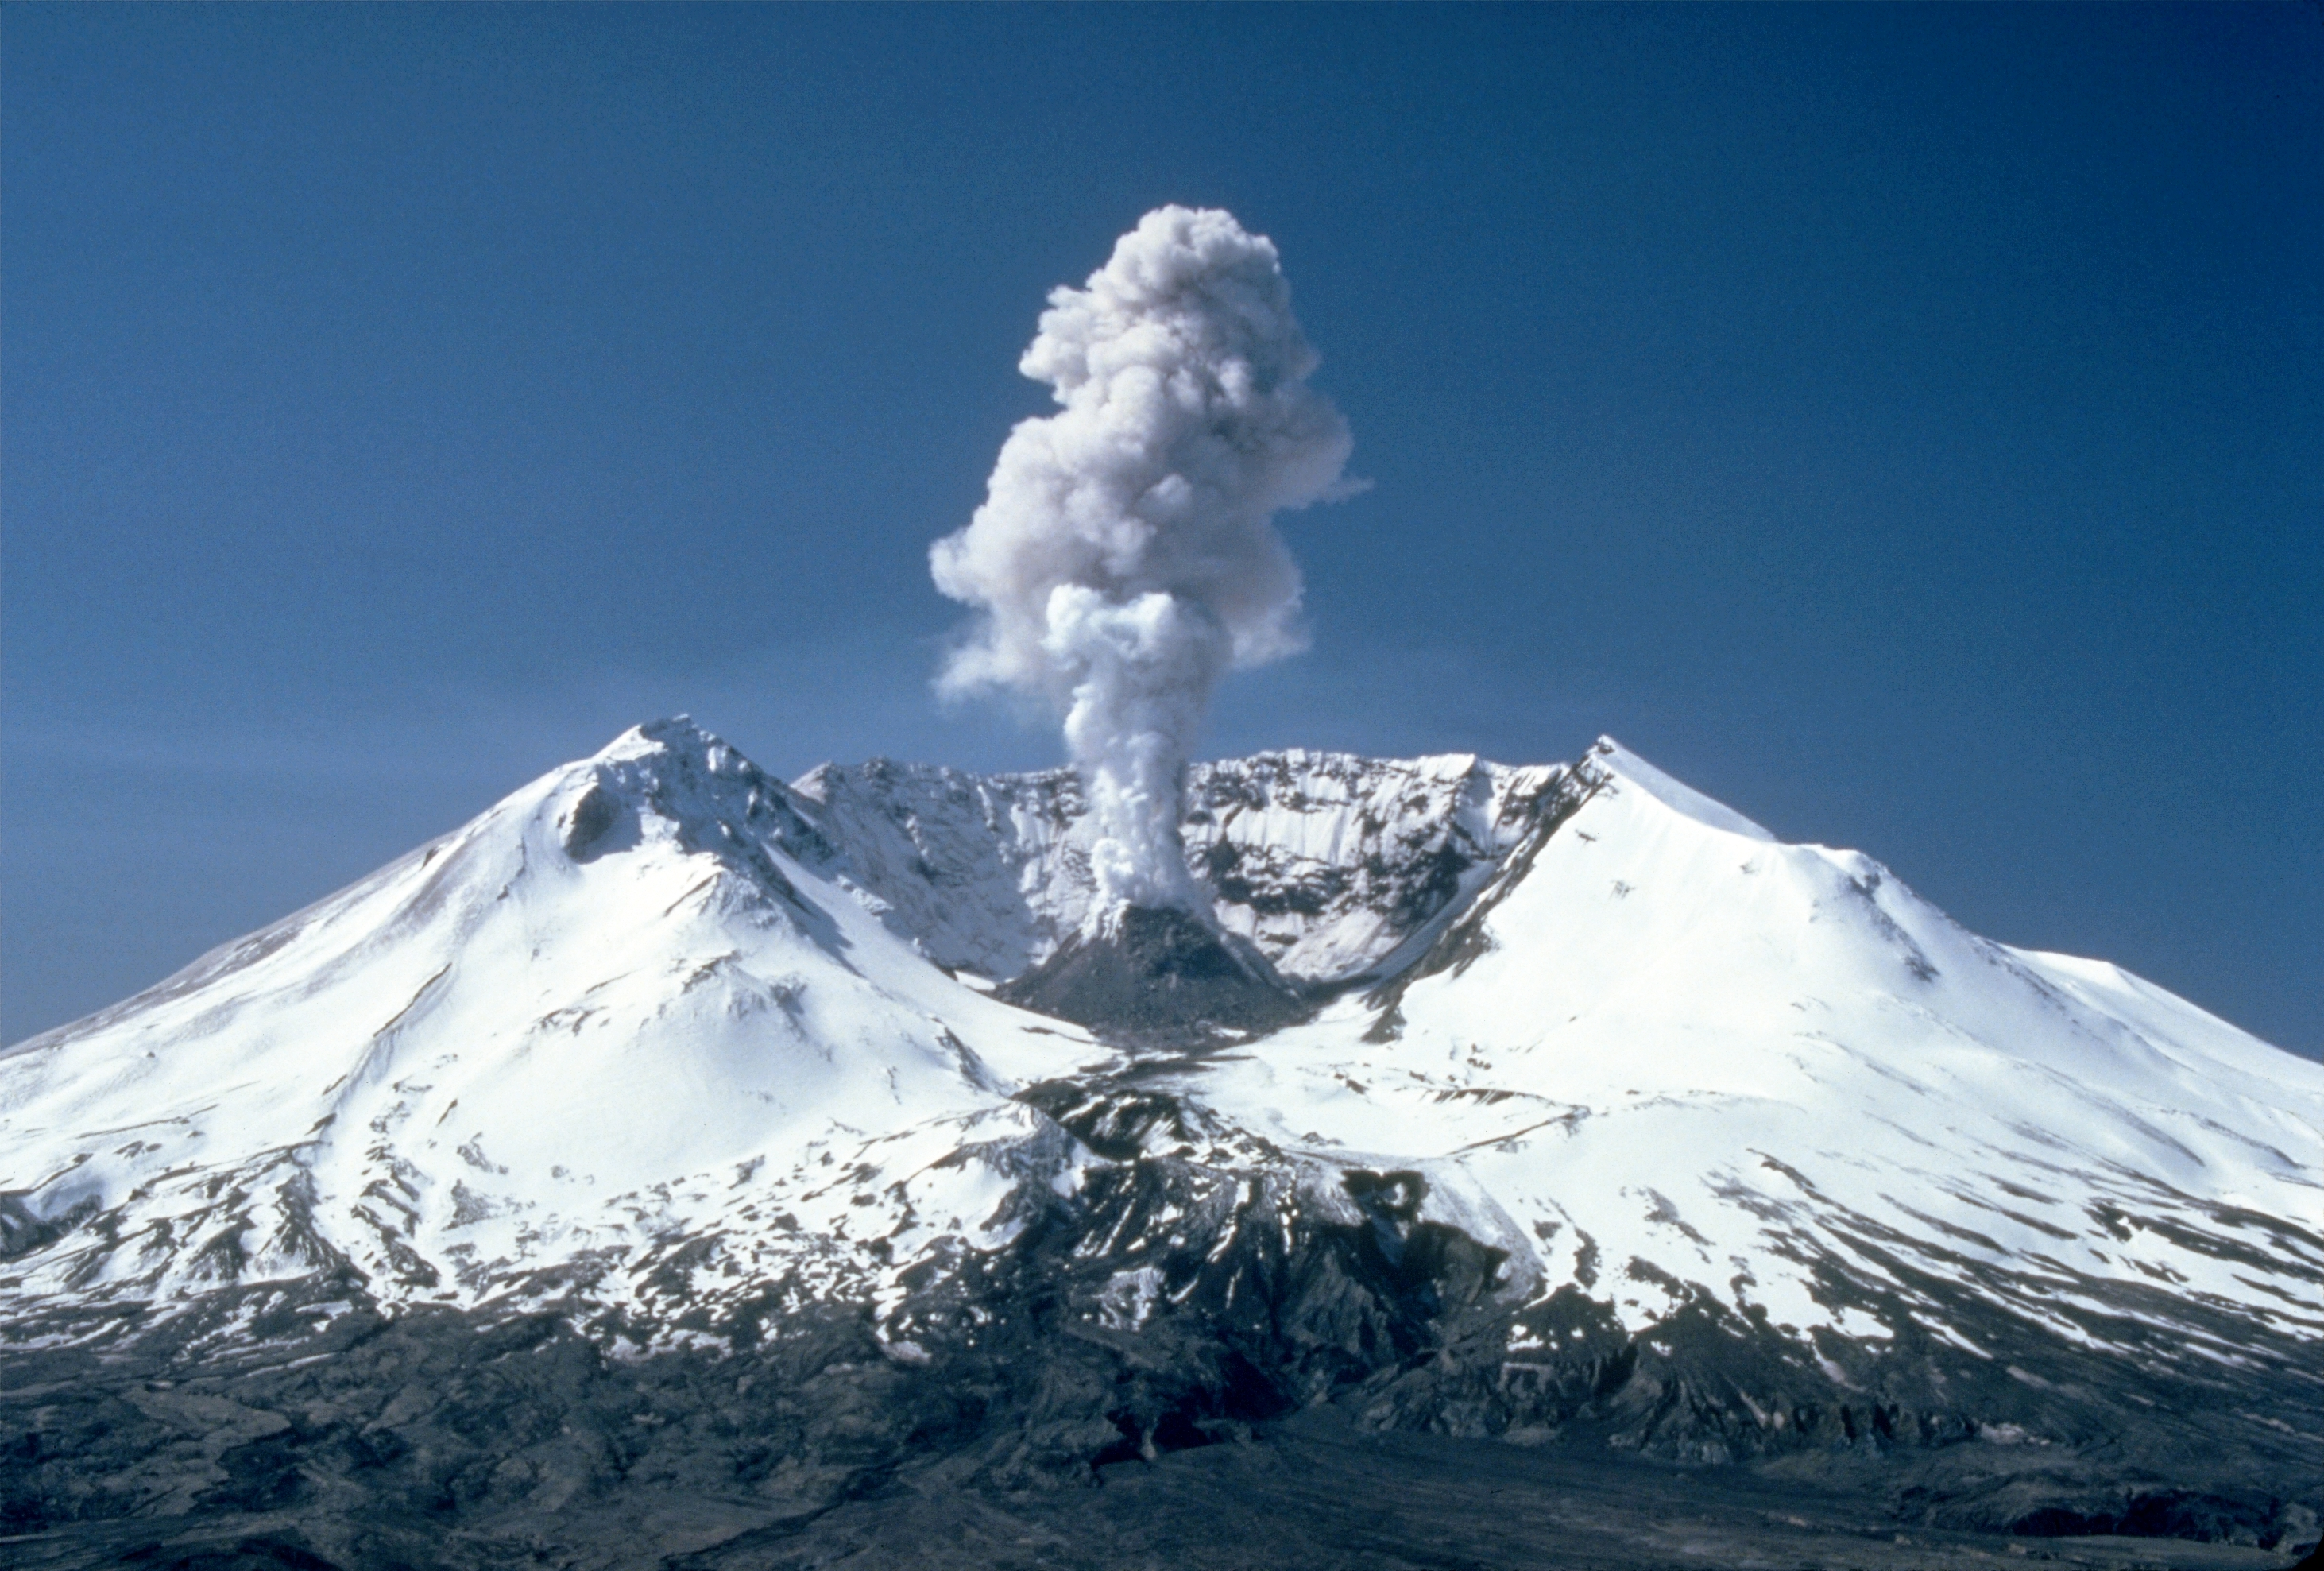 Description MSH82 St Helens Plume From Harrys Ridge 05 19 82